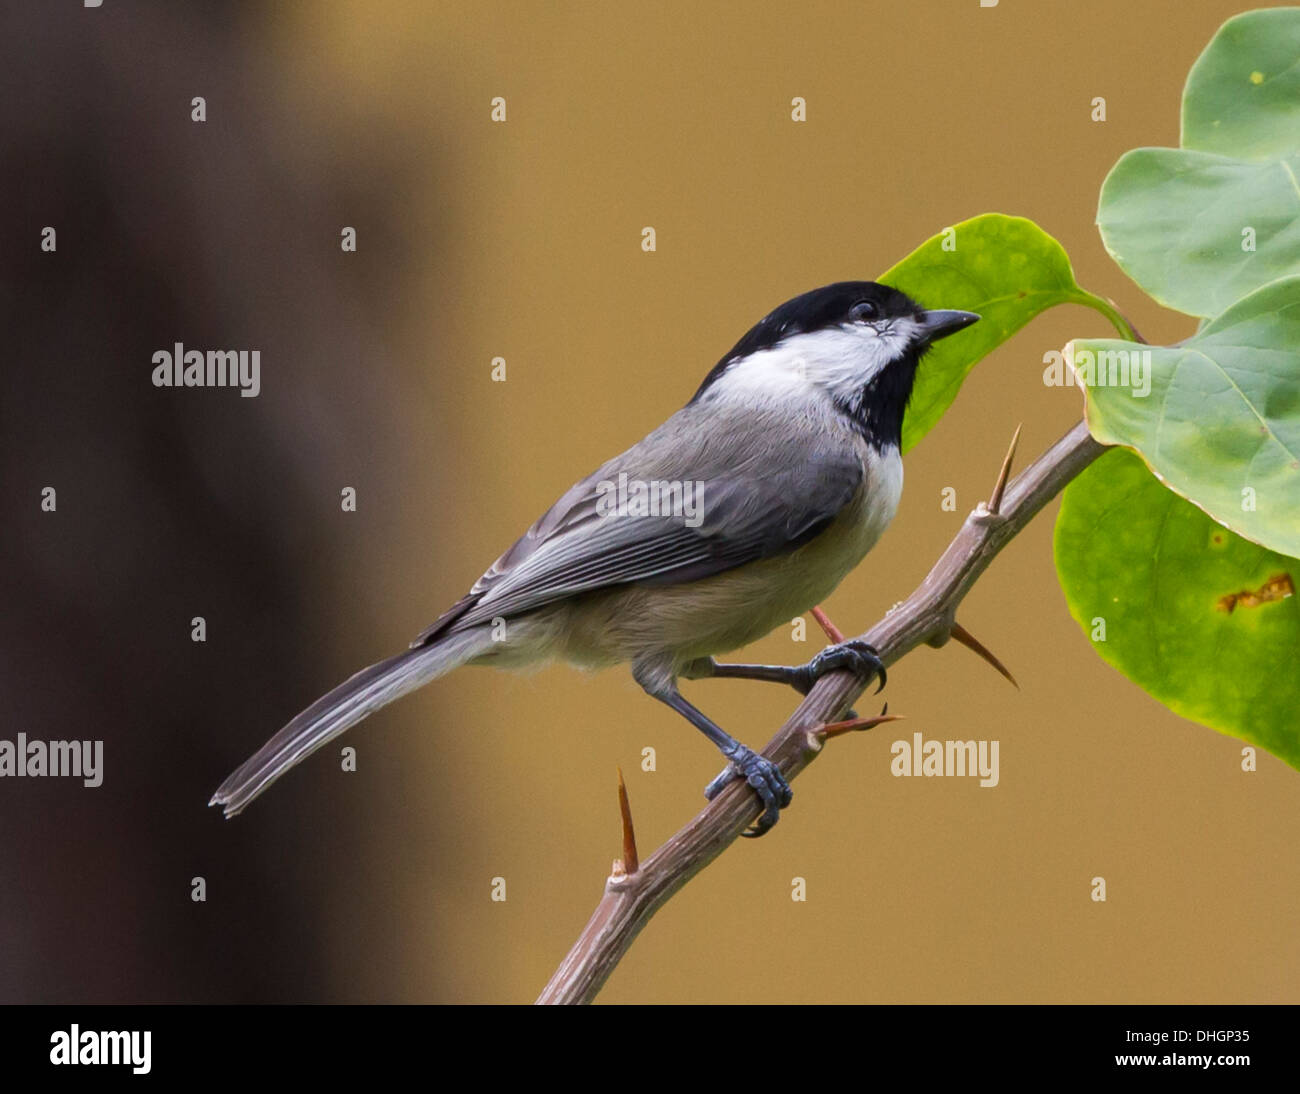 Carolina Chickadee perched on a Bougainvillea branch. - Stock Image